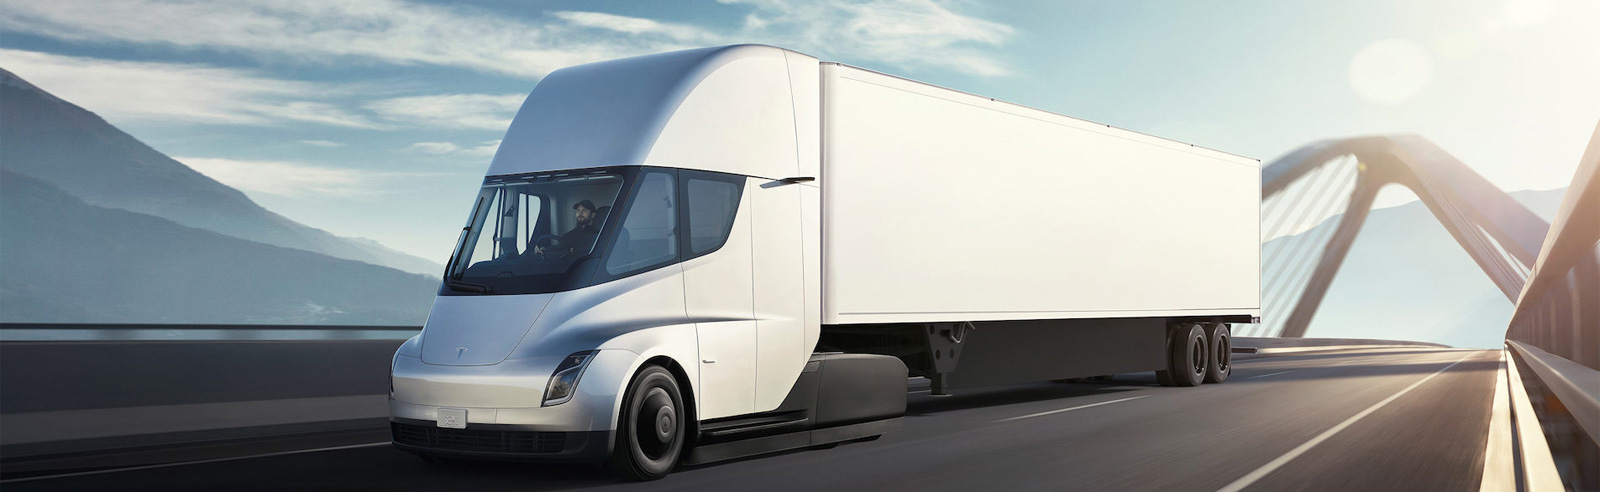 "Tesla Semi will enter production at the end of 2020, the ""Cyberpunk truck"" will be unveiled this summer"